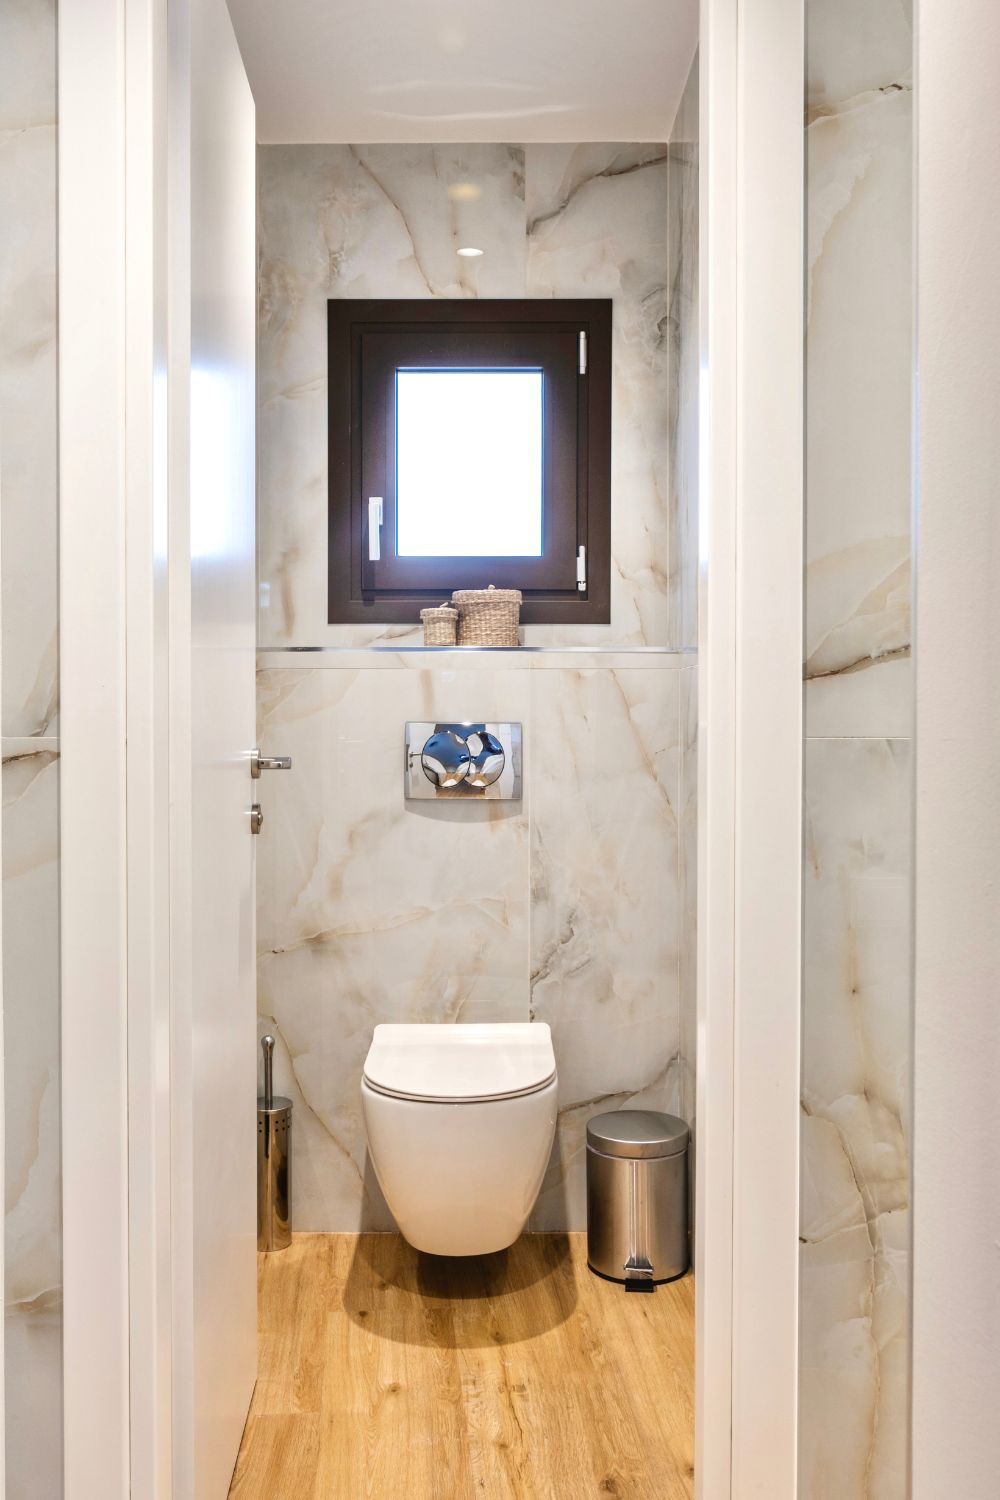 #701 Bathroom with WC and Shower